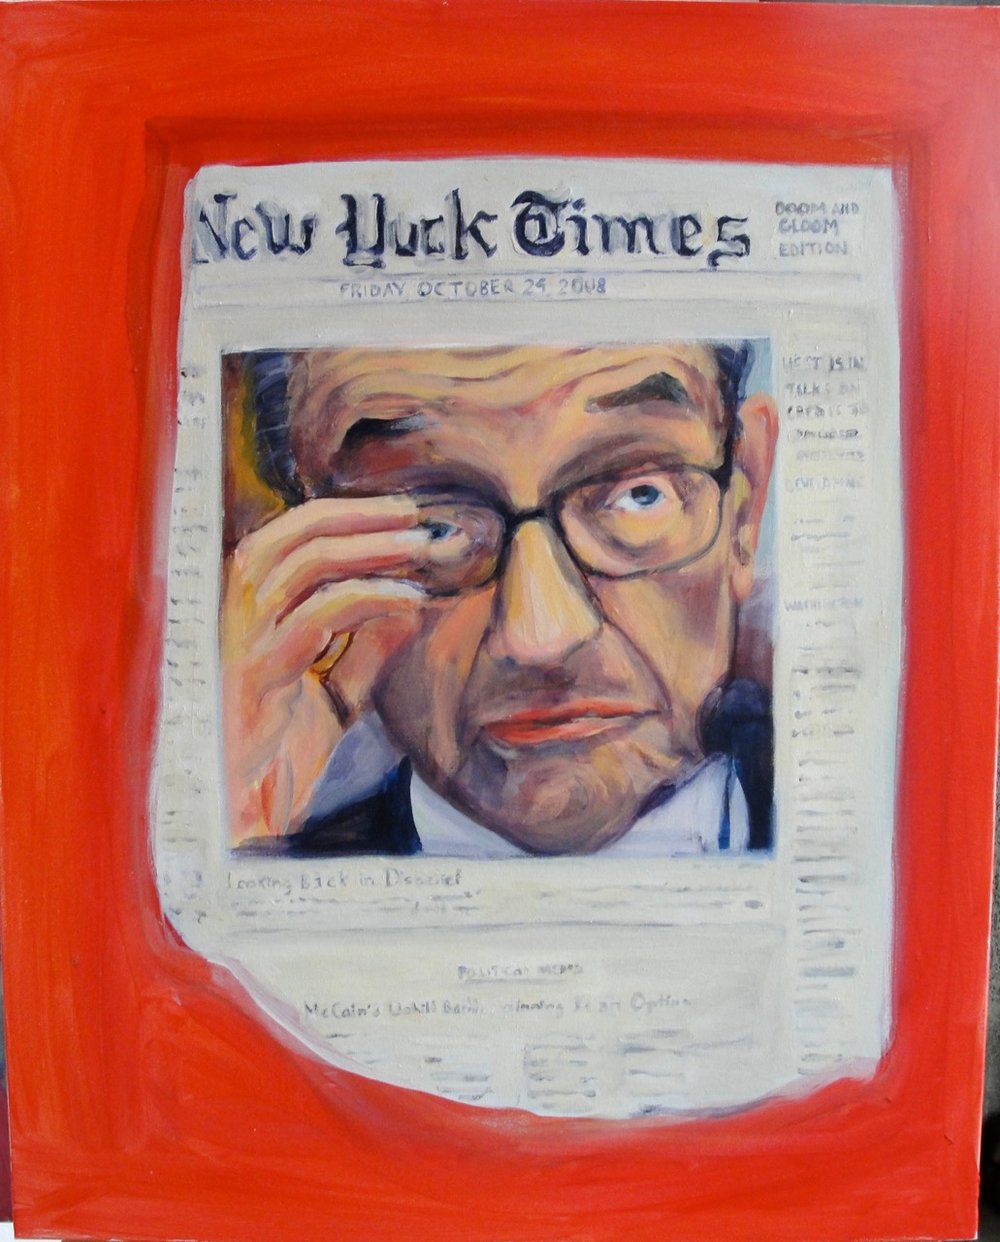 "GREENSPAN IN DISBELIEF (2010). Acrylic on canvas, 30 x 24"" inches. Private collection, U.S."